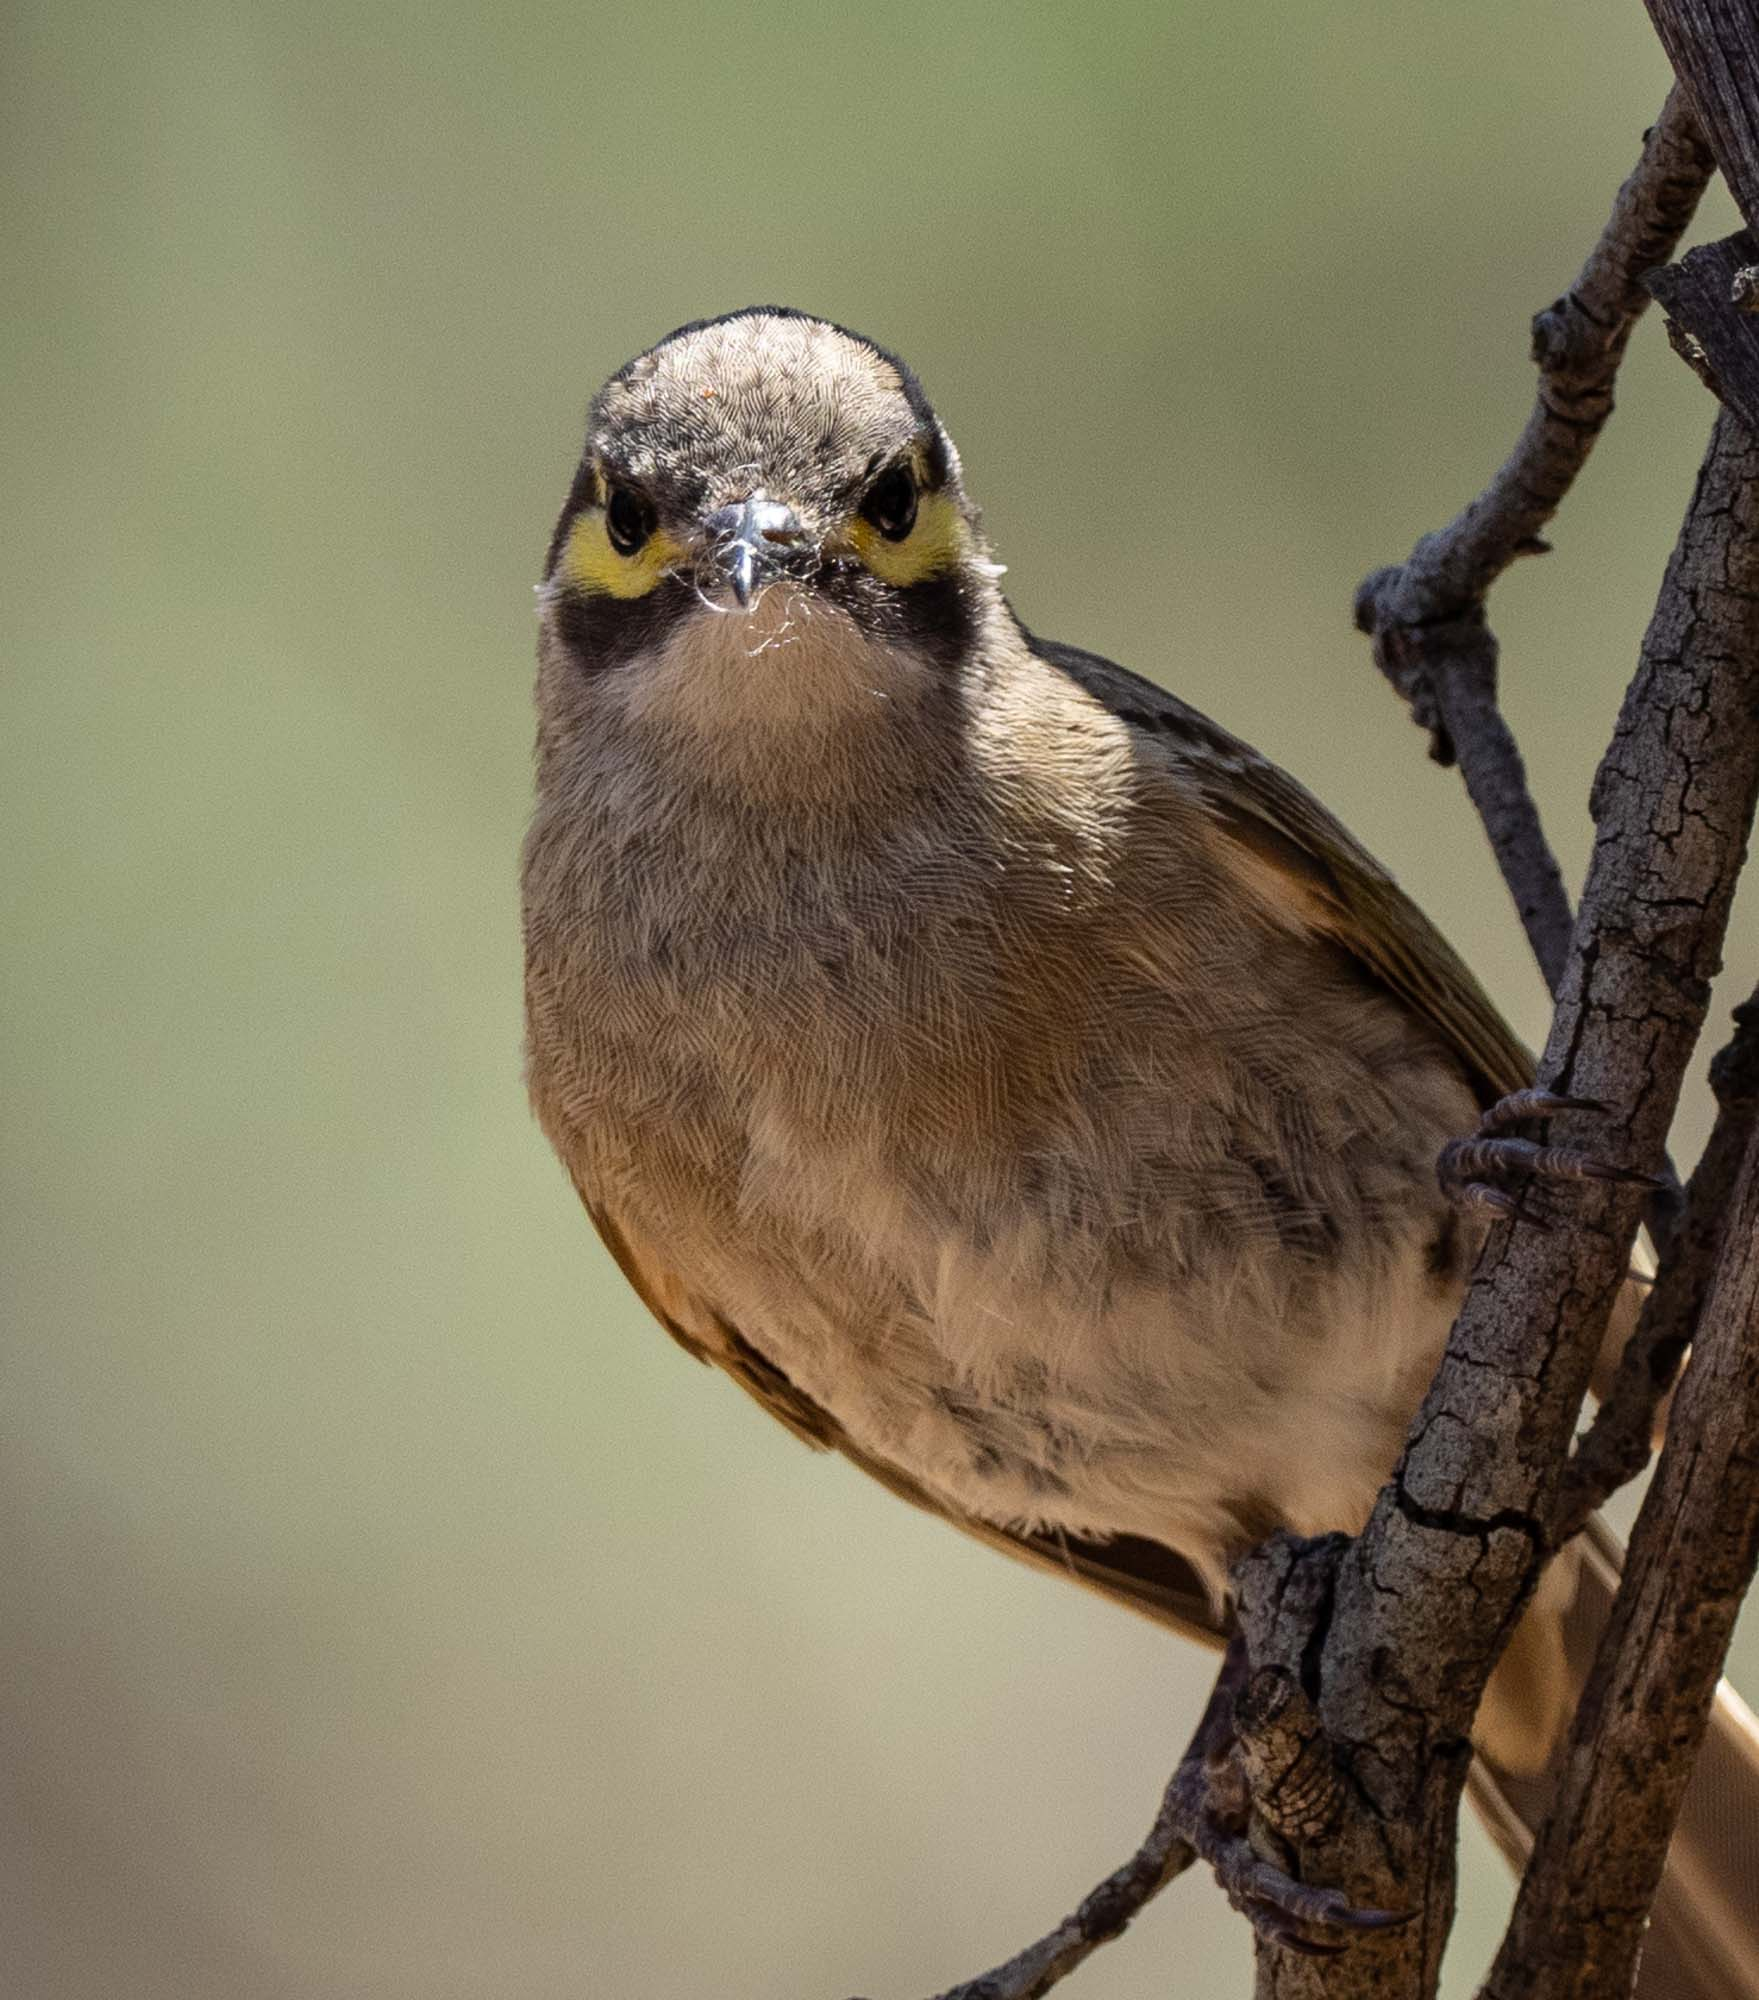 ... with a mouthful of nesting material